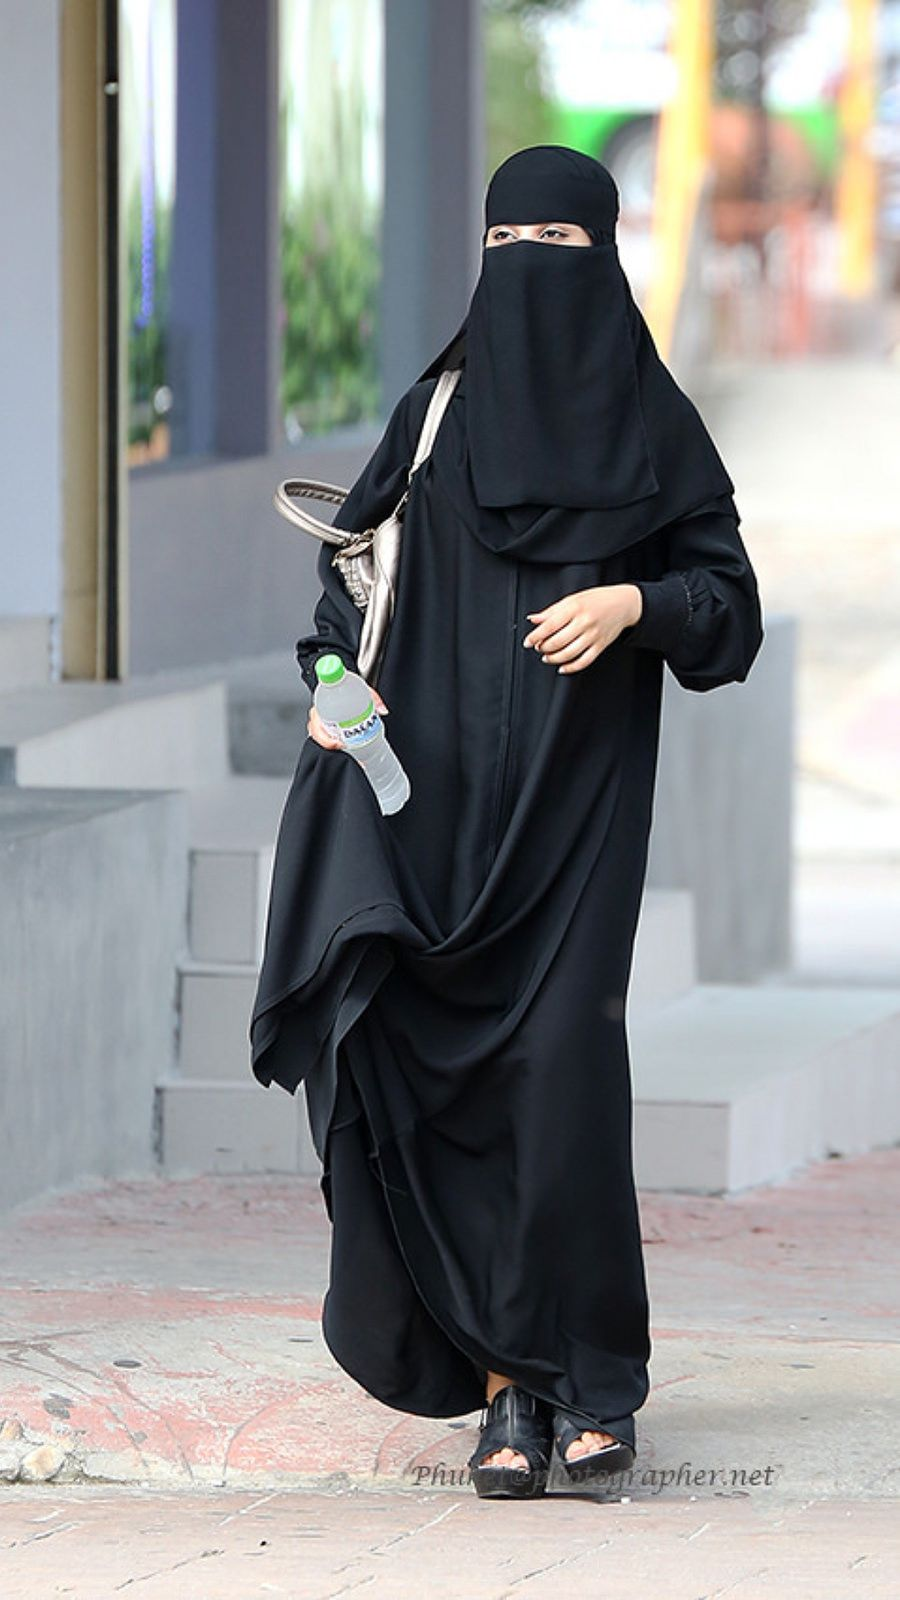 103 best Niqab Styles images on Pinterest | Hijab styles ... |Muslimah Niqab